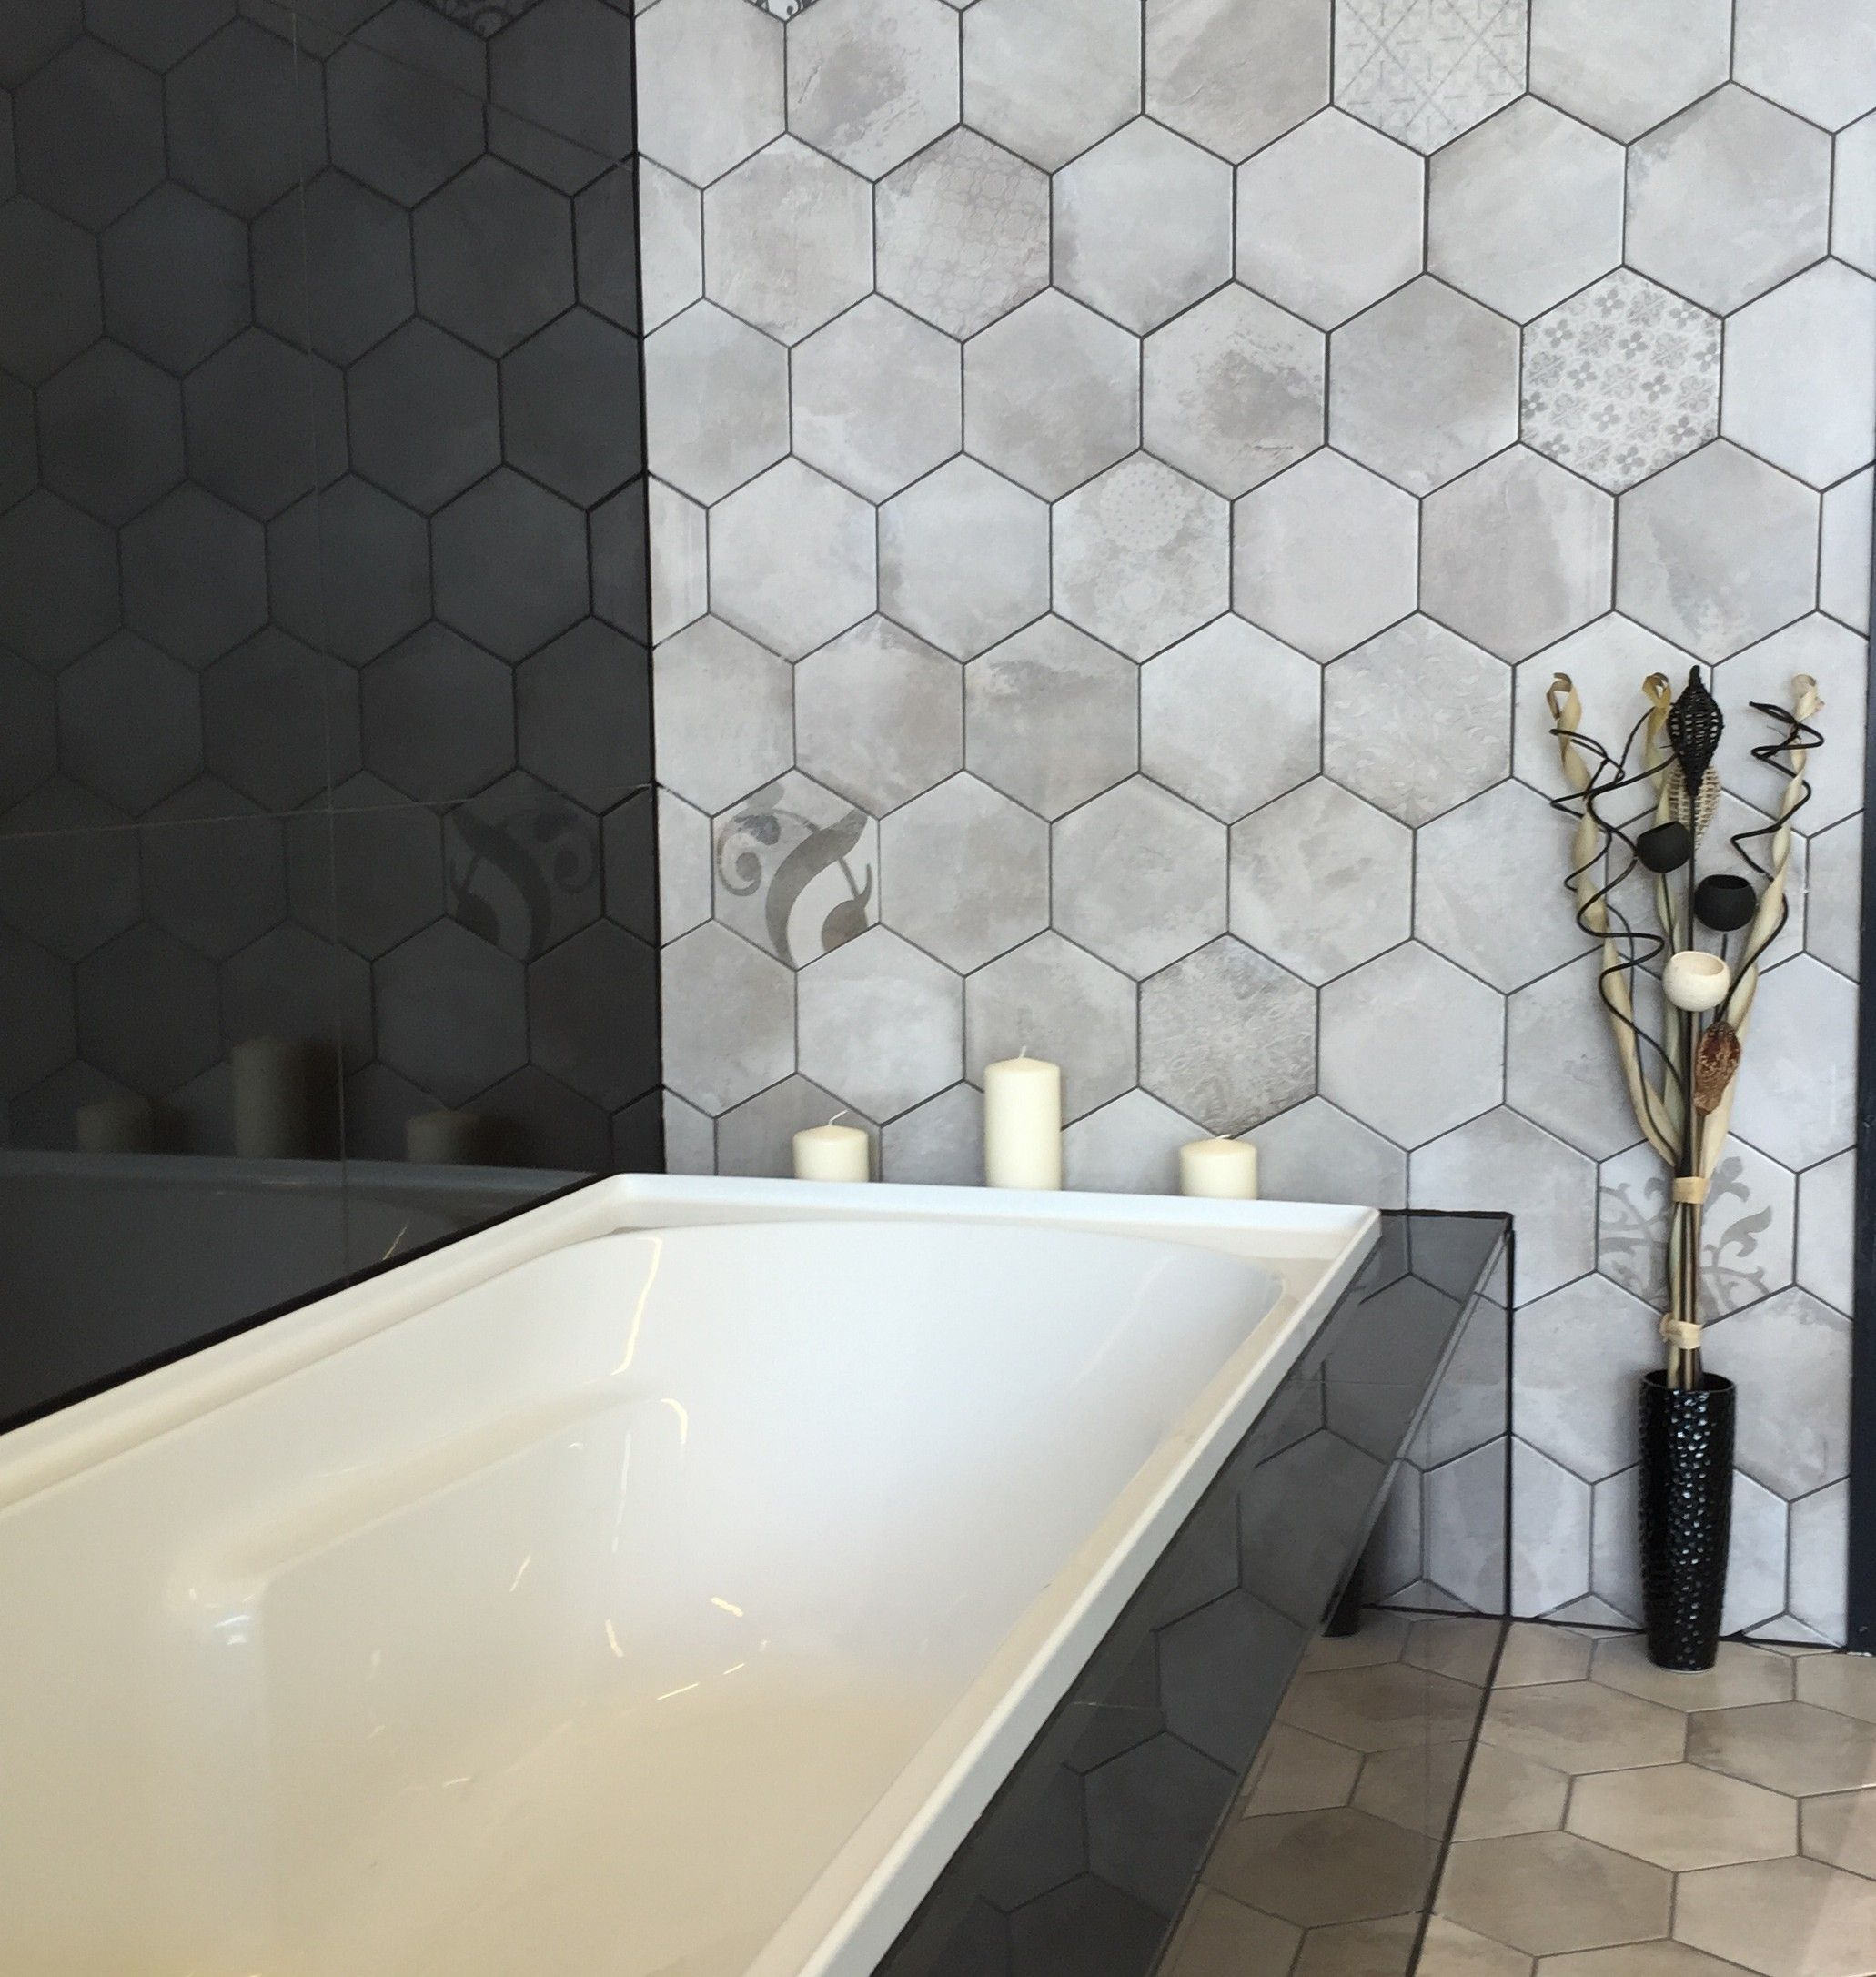 Domme grey hexagon 20x20 sqm floor tiles tiles our products this plain grey hexagon tile features a natural matt stone look surface its can be used on floor and wall with stunning effects dailygadgetfo Images